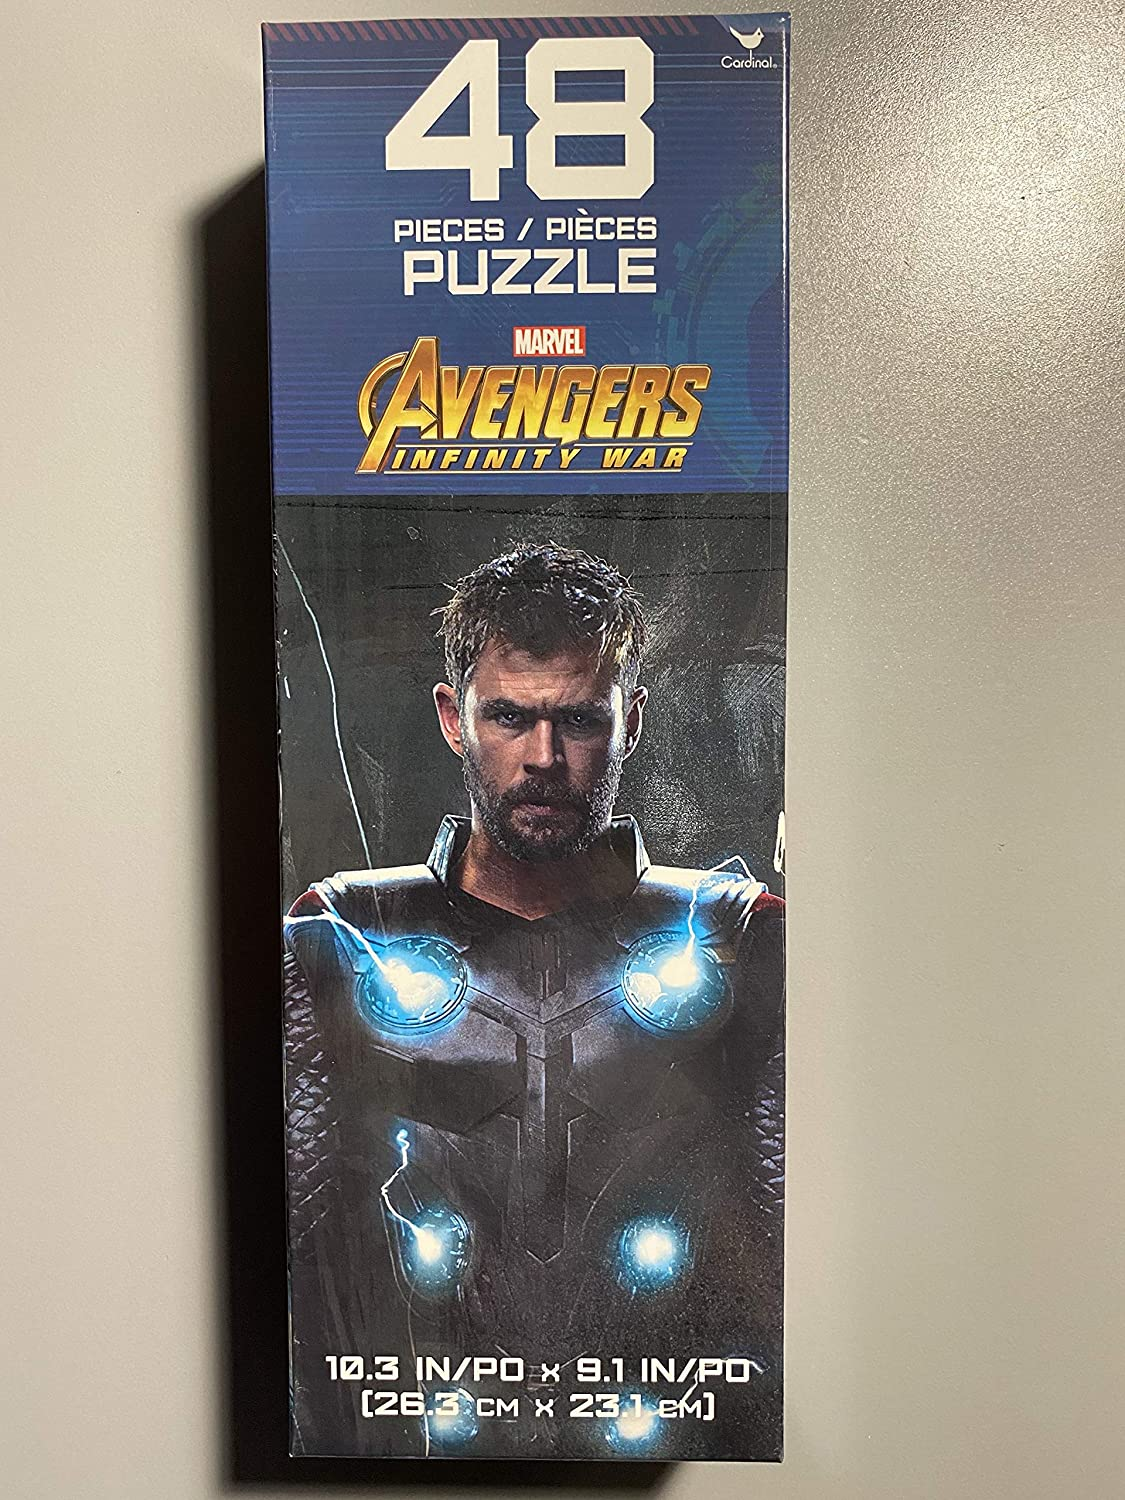 Cardinal Games Avengers Infinity Wars Jigsaw Puzzle - Avengers Thor - 48 Puzzle Pieces